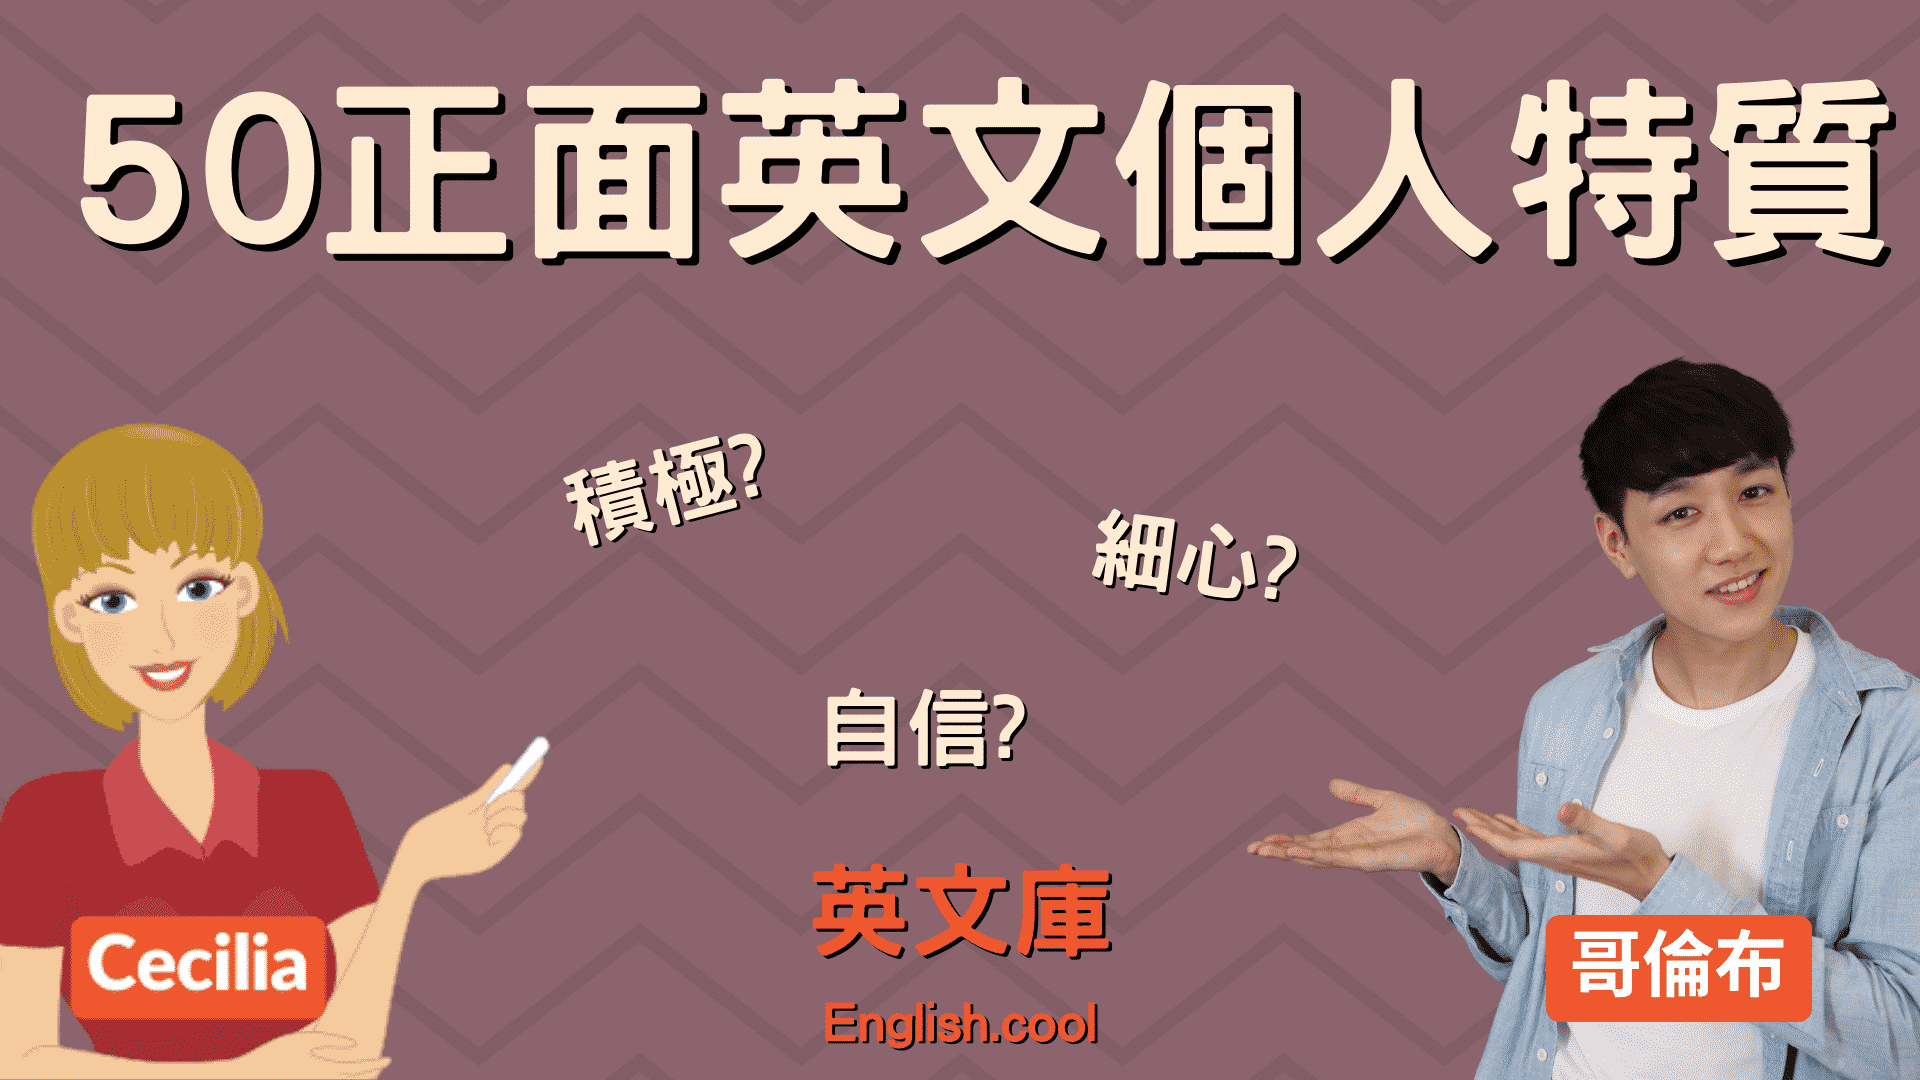 You are currently viewing 50 個正面英文個人特質!積極?細心?來一次搞懂!